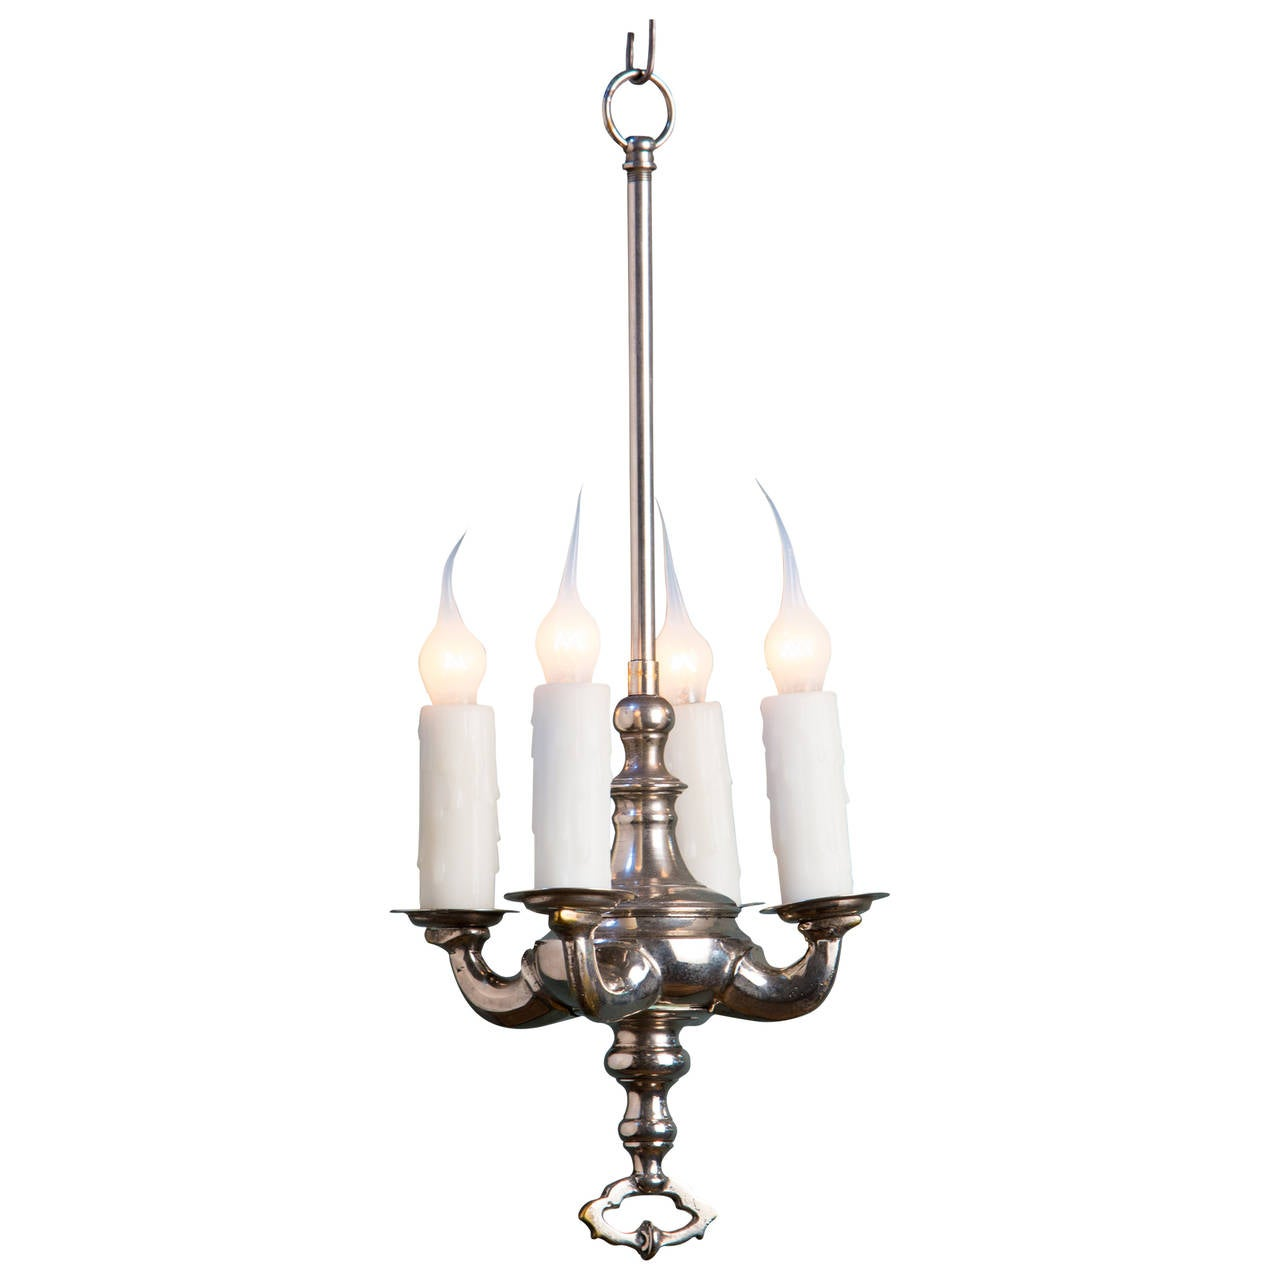 Vintage French Nickel Chandelier at 1stdibs